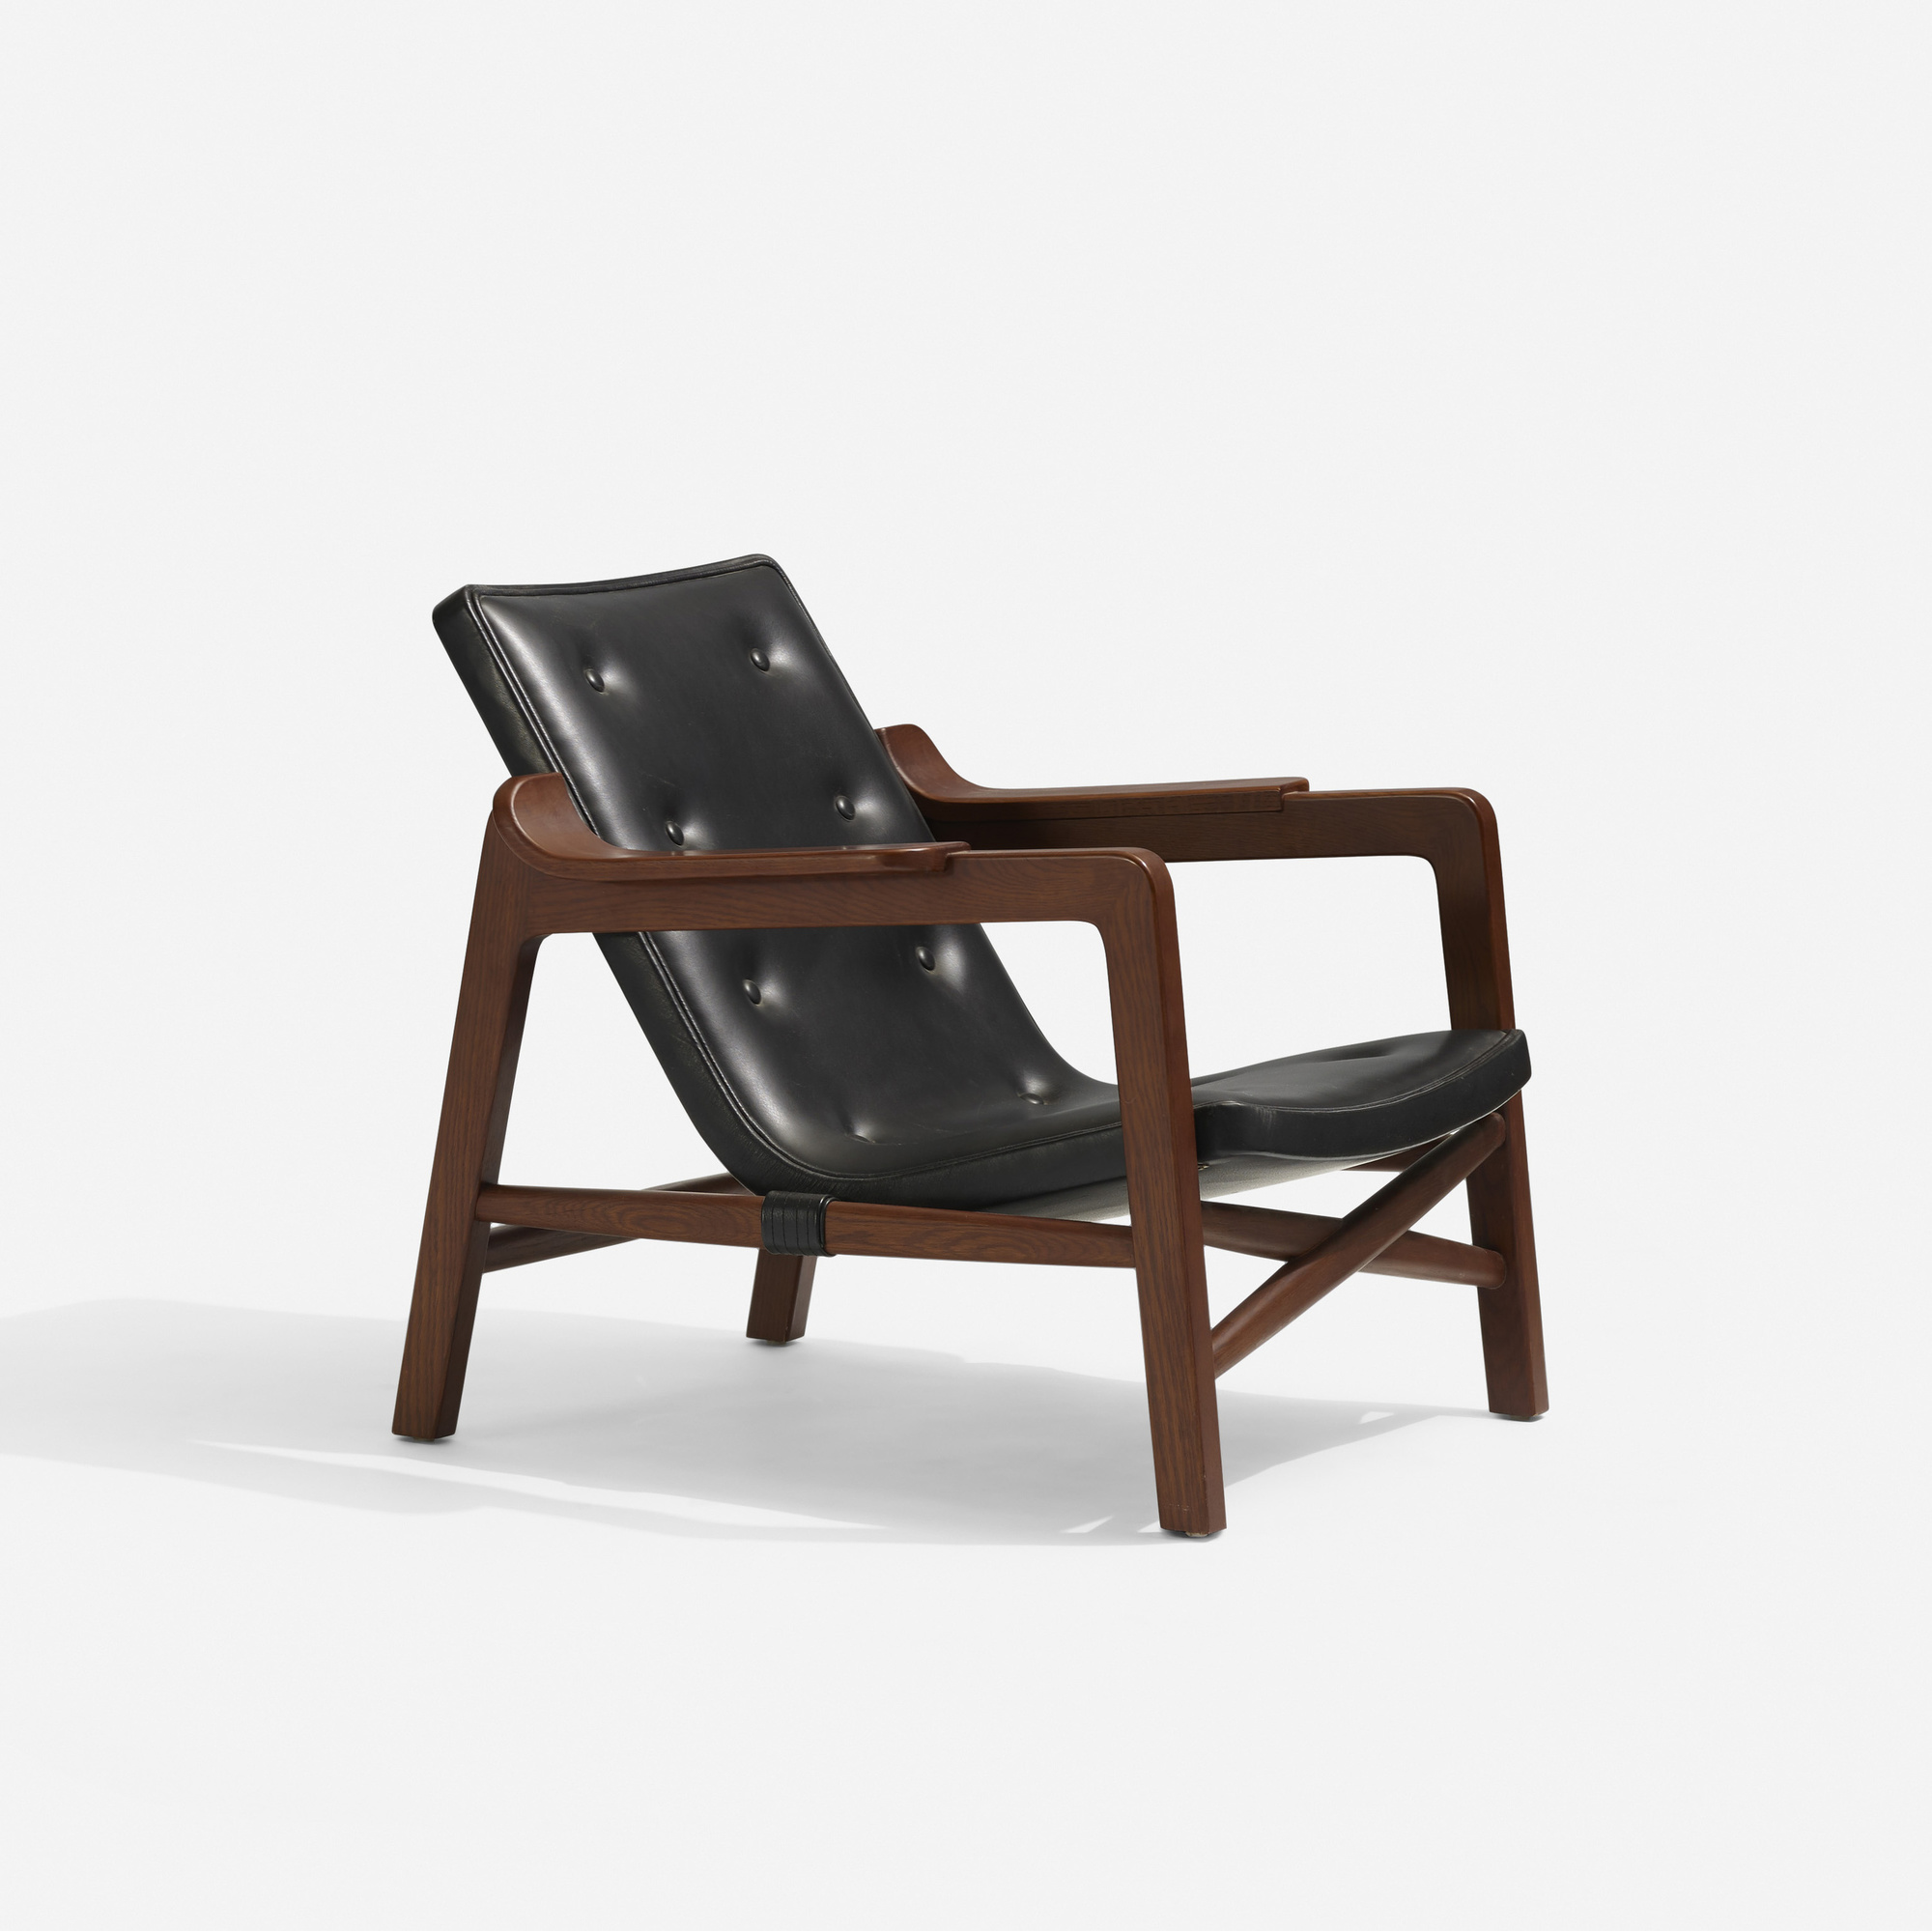 386: Edvard and Tove Kindt-Larsen / lounge chair (1 of 4)